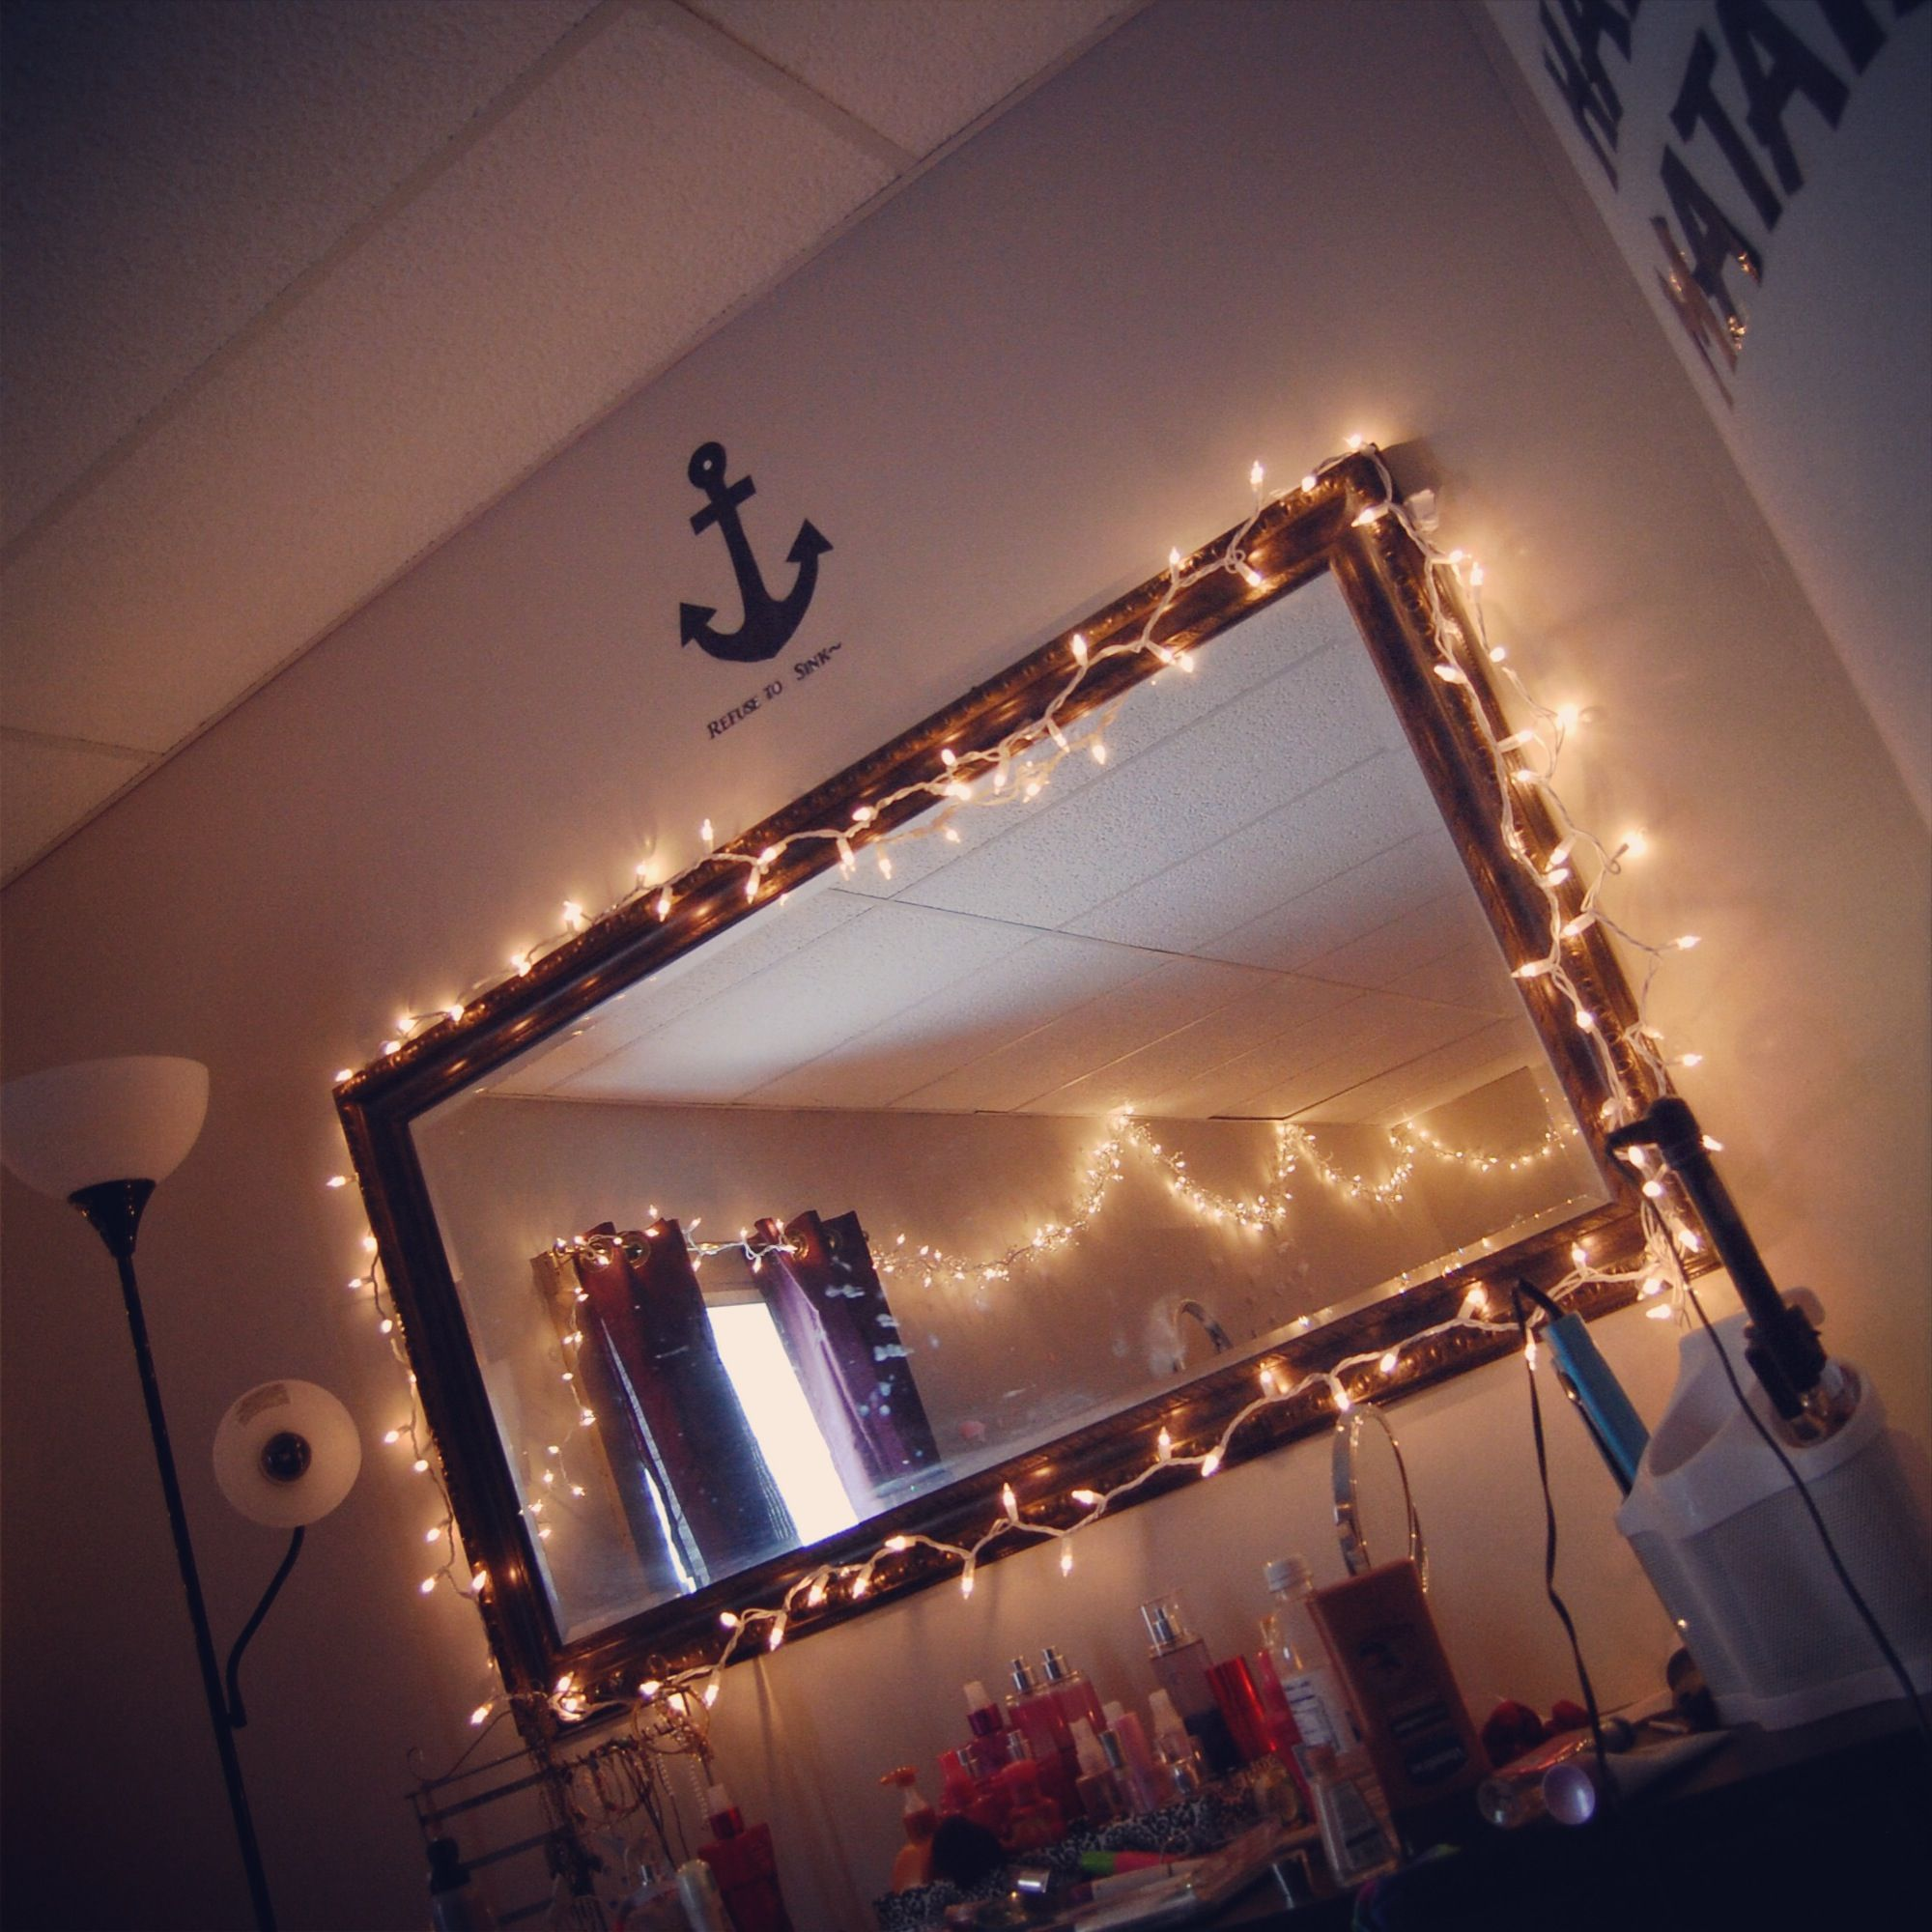 Diy Vanity Mirror With Rope Lights : tumblr room. mirror with lights around them:) Future Home Pinterest String lights, The ...